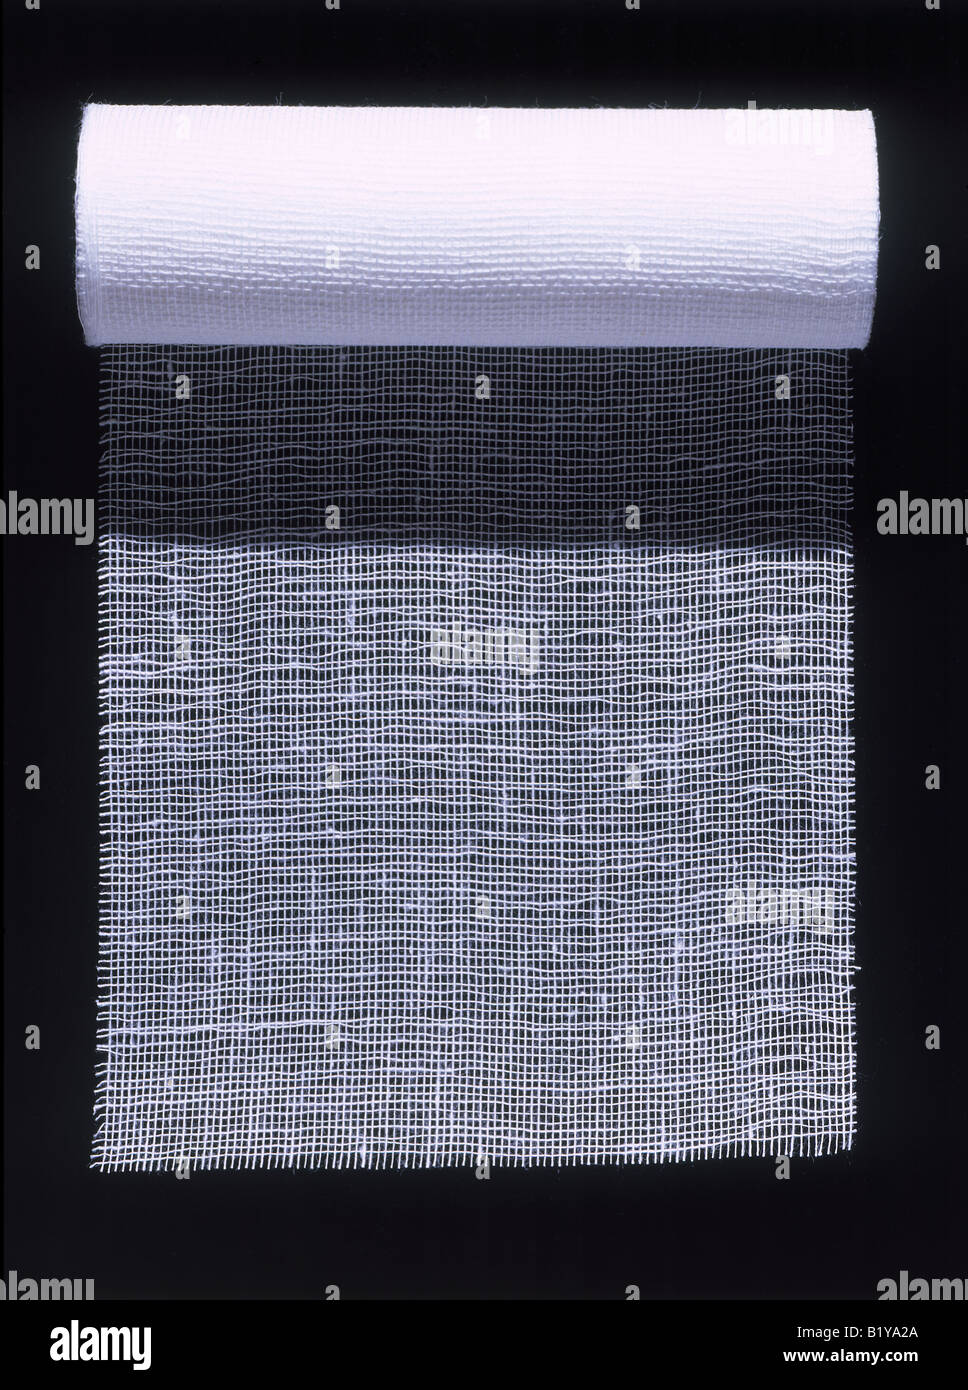 A roll of white medical gauze unrolled on black. - Stock Image